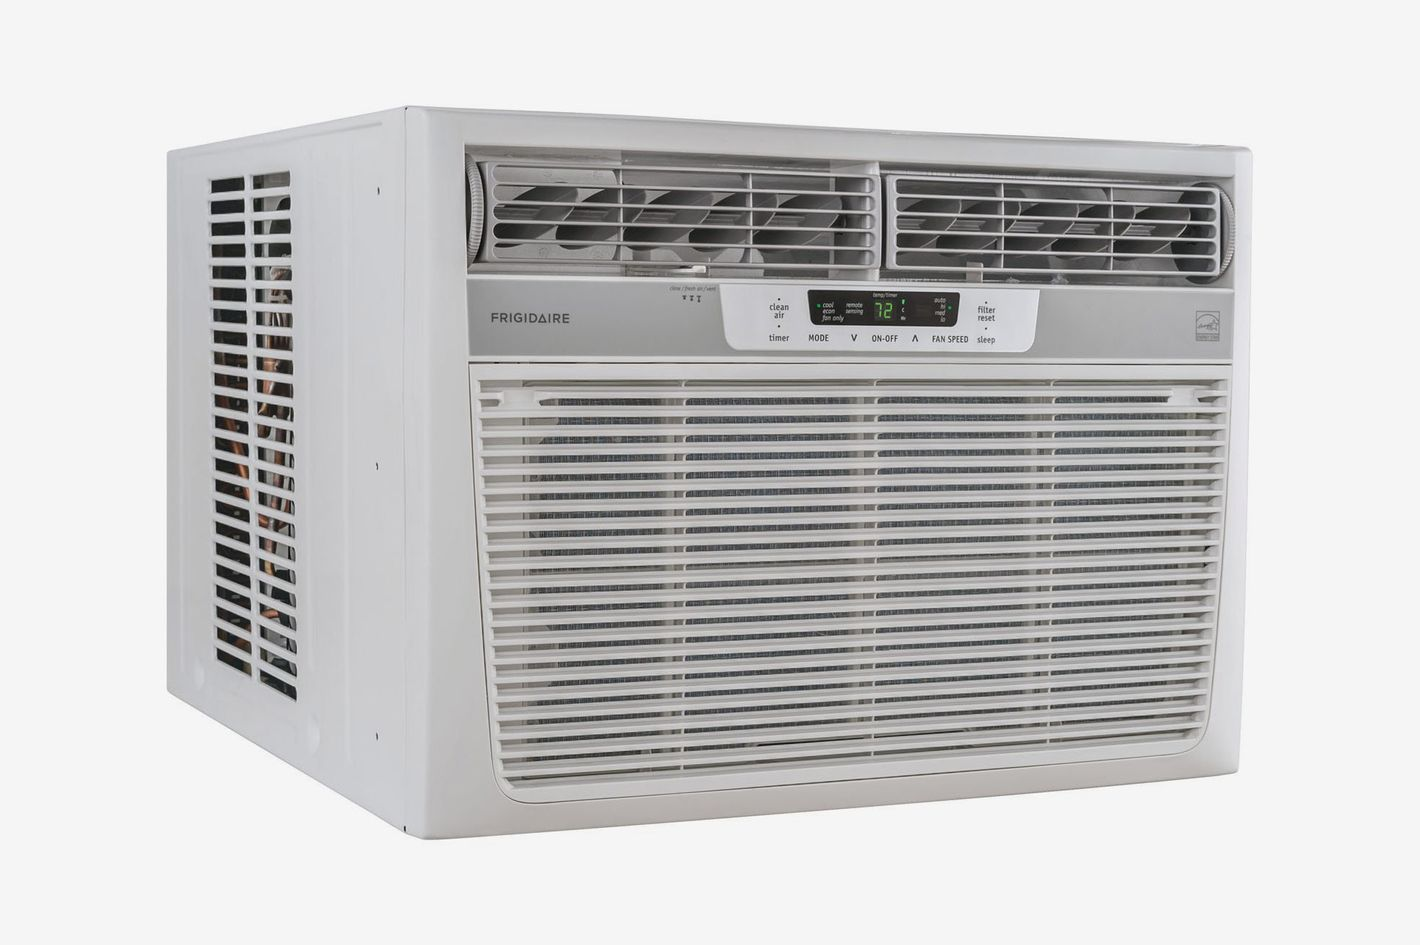 Brilliant 12 Best Portable Air Conditioners On Amazon 2018 Wiring Cloud Oideiuggs Outletorg